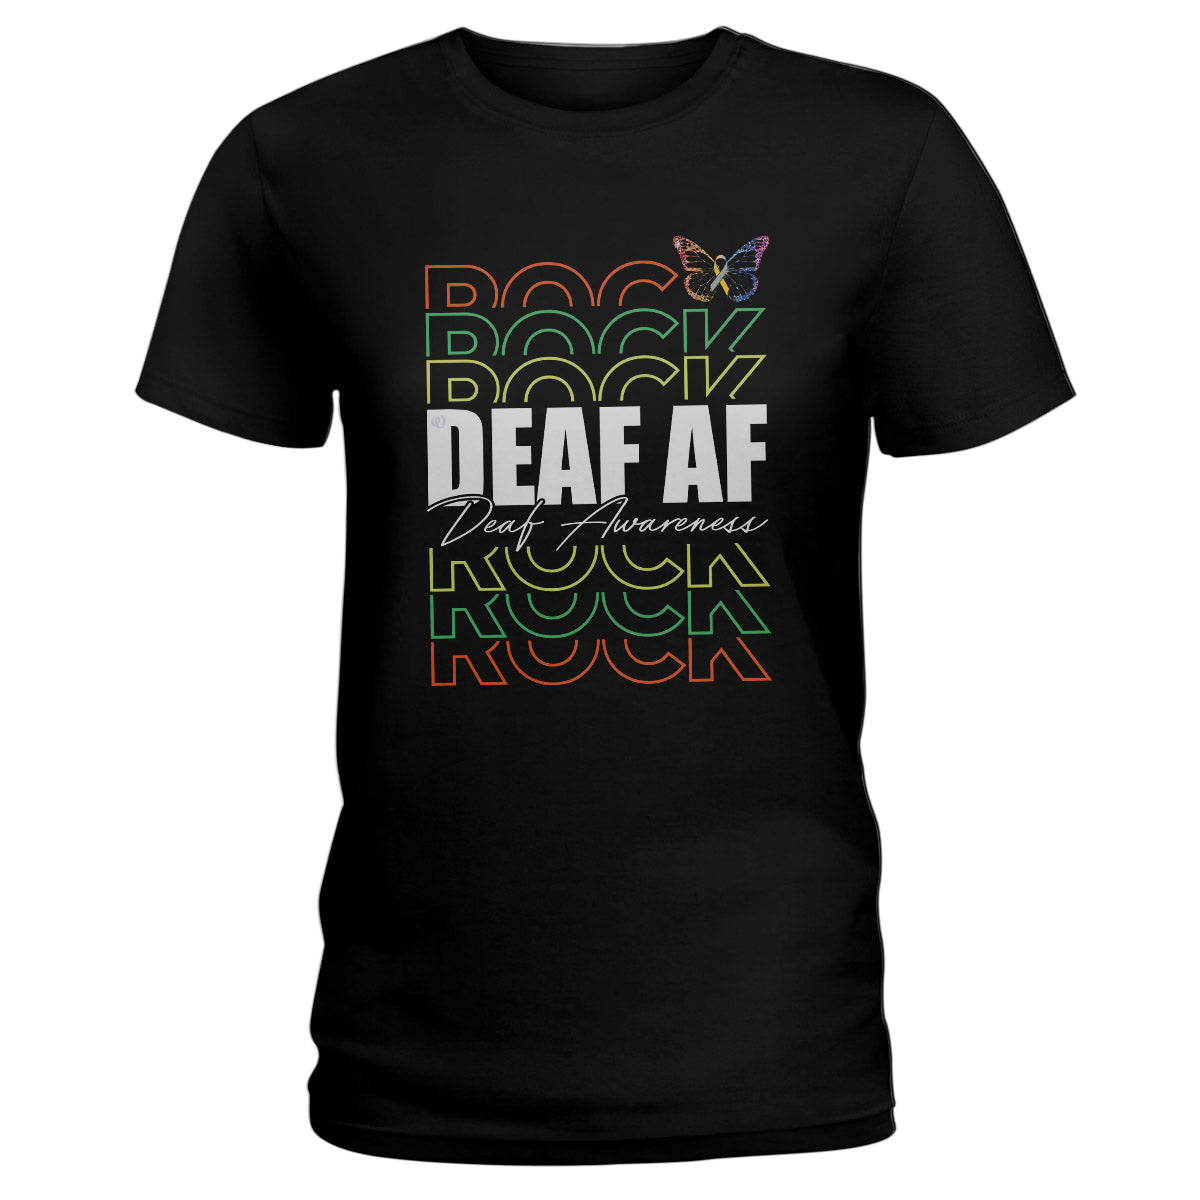 Deaf Af Deaf Awareness Ladies T-shirt